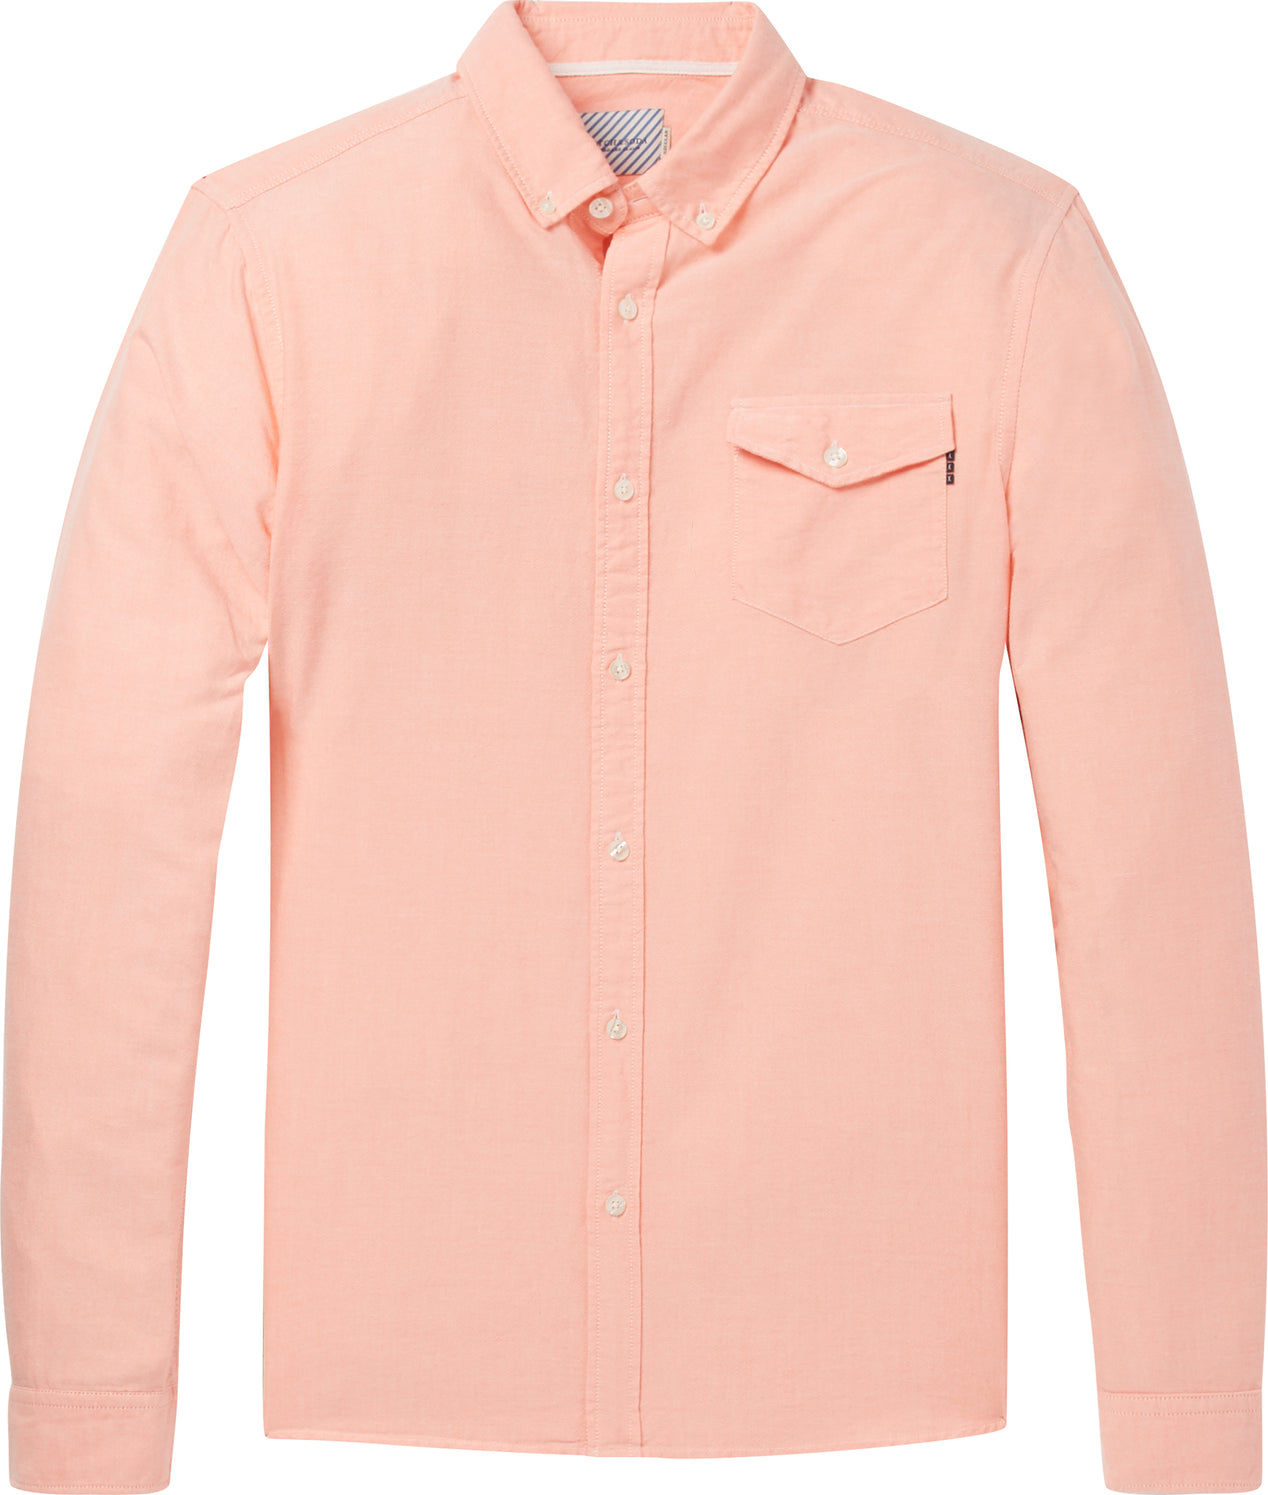 e100fa80271 Scotch & Soda Cotton Oxford Shirt - Men's | The Last Hunt